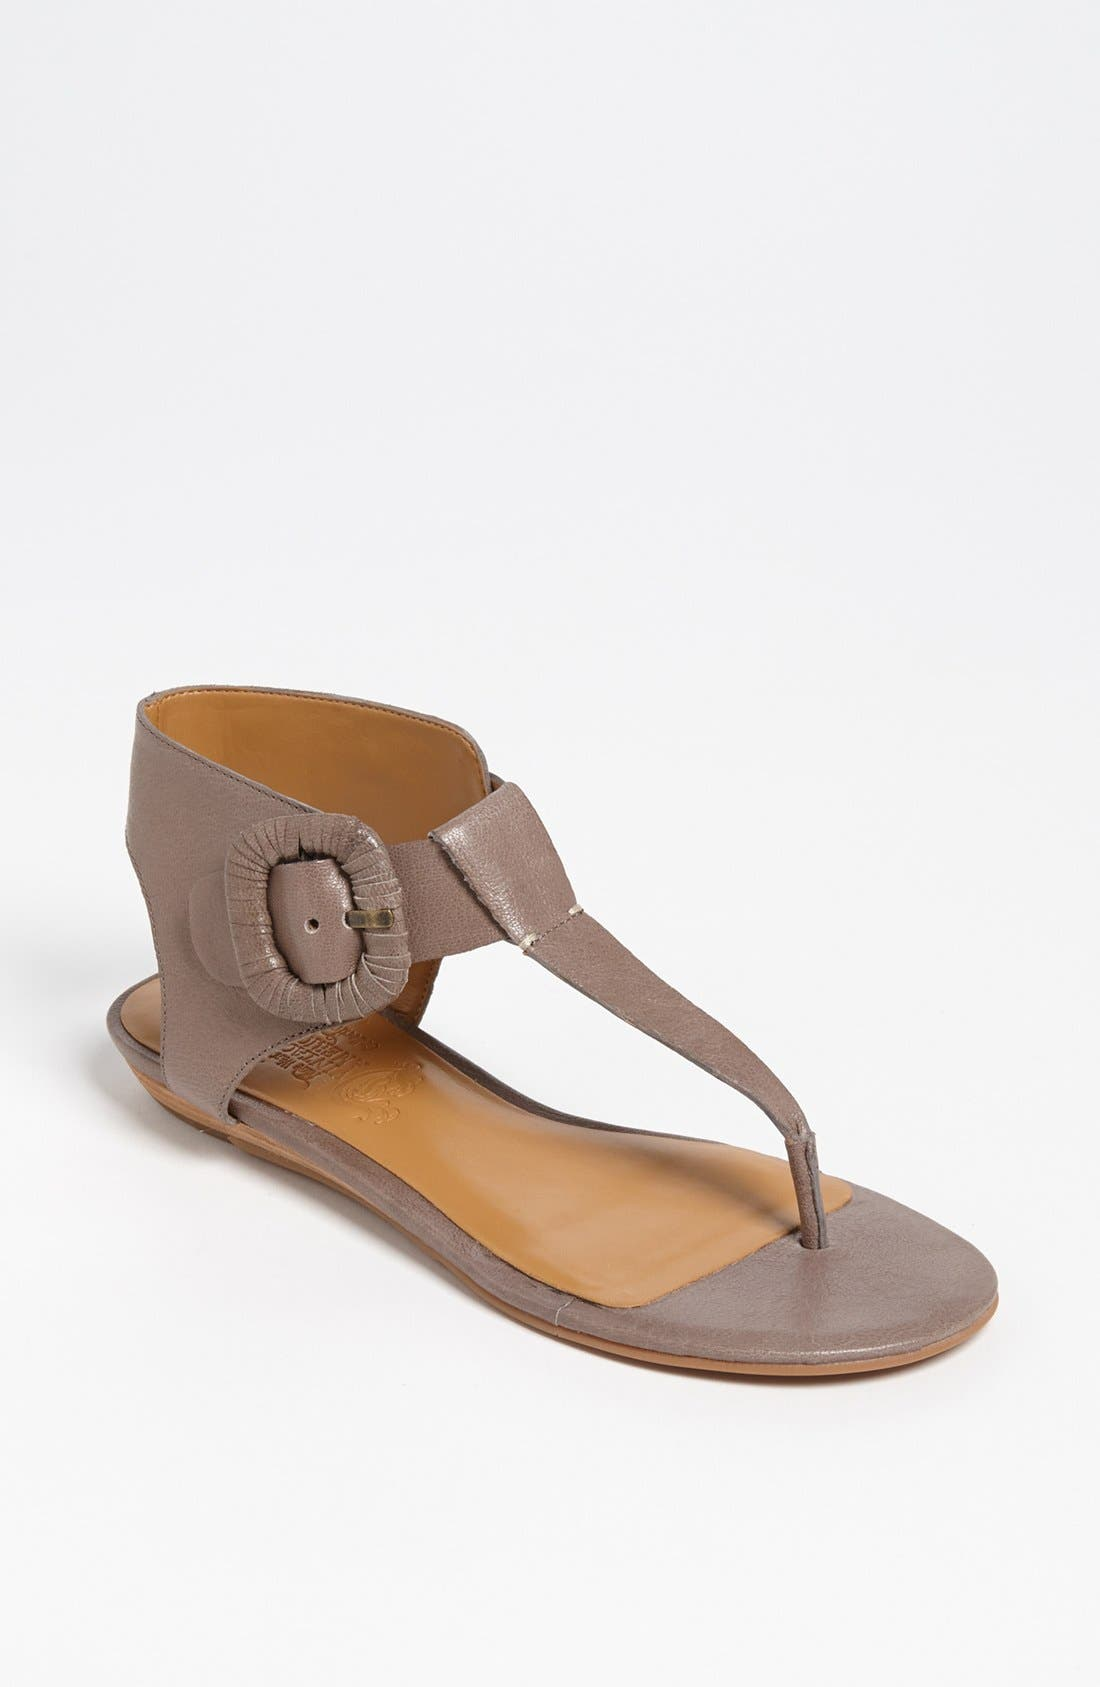 Alternate Image 1 Selected - Nine West 'Wiloh' Sandal